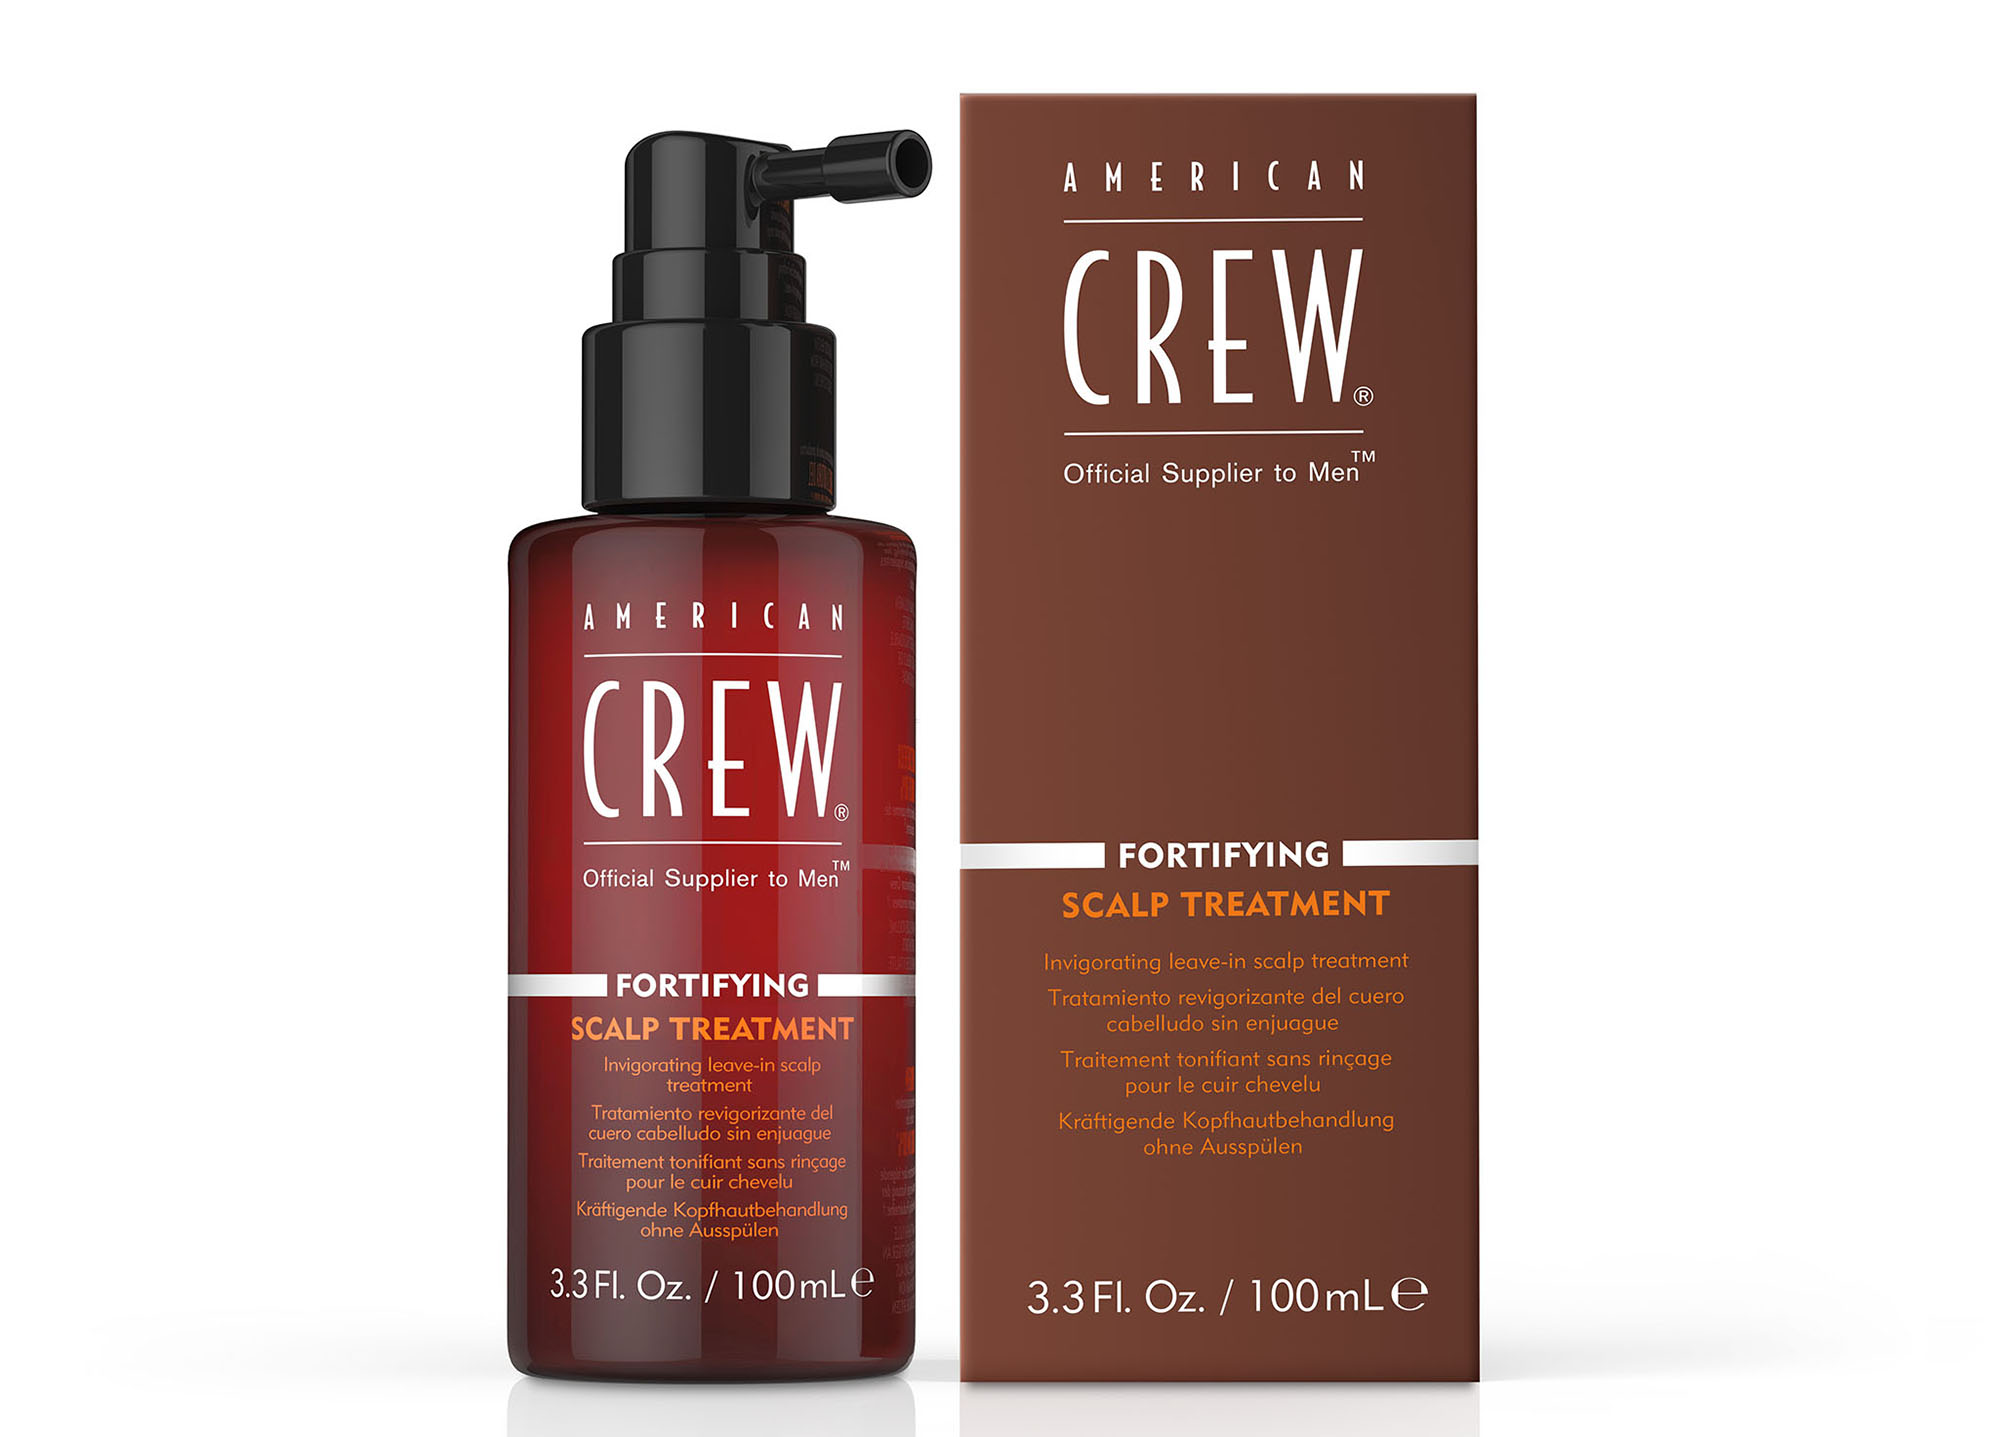 American Crew_fortifying_scalp_treatment_PCP24,90euros_2